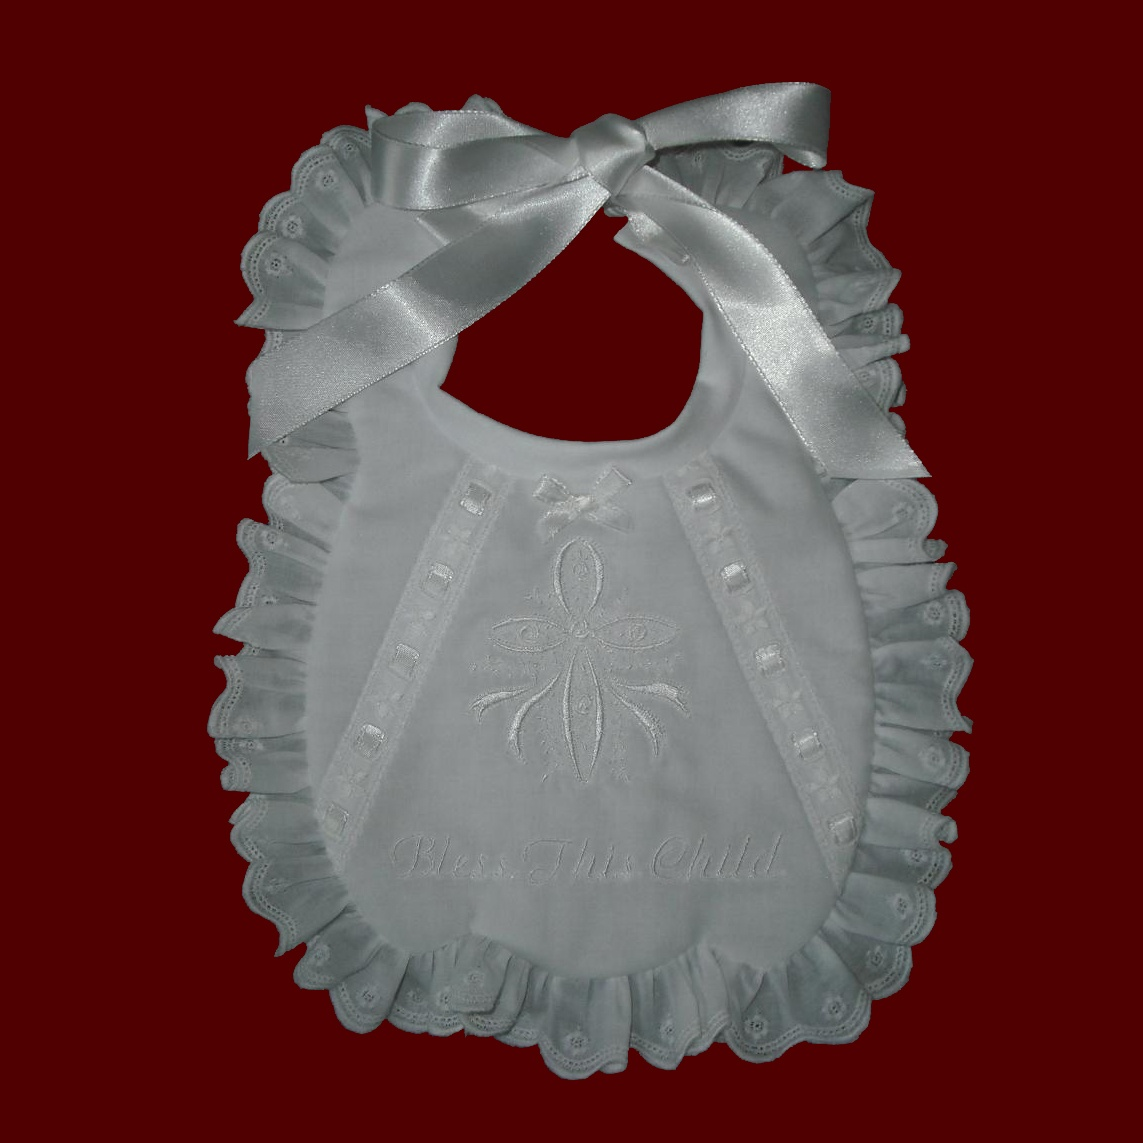 Made in USA Girls Ruffled Christening Bib